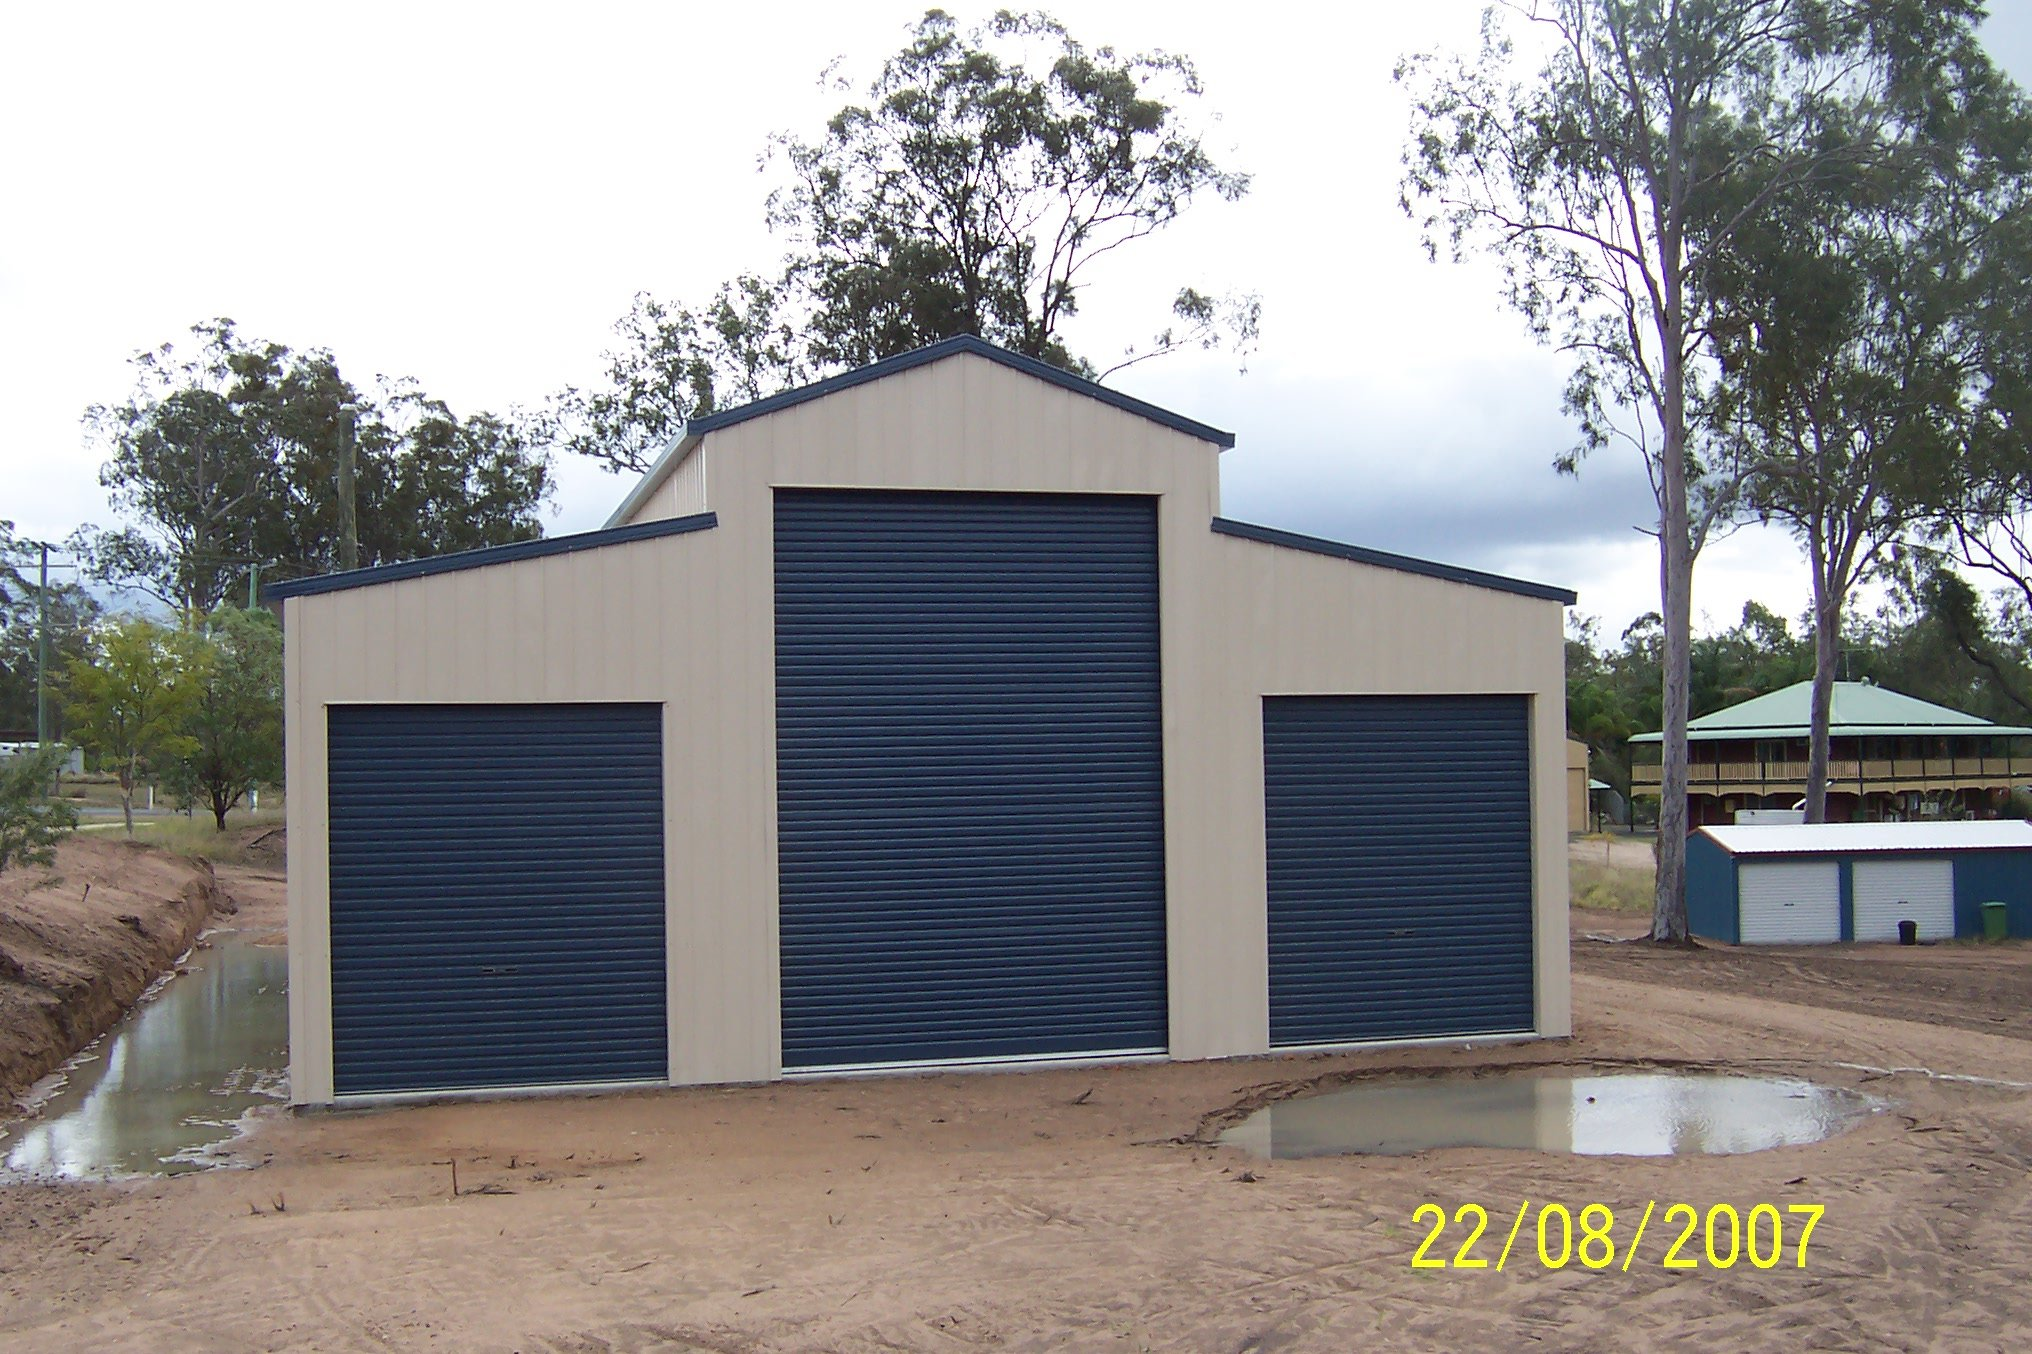 3 bay American style barn with 3 roller doors